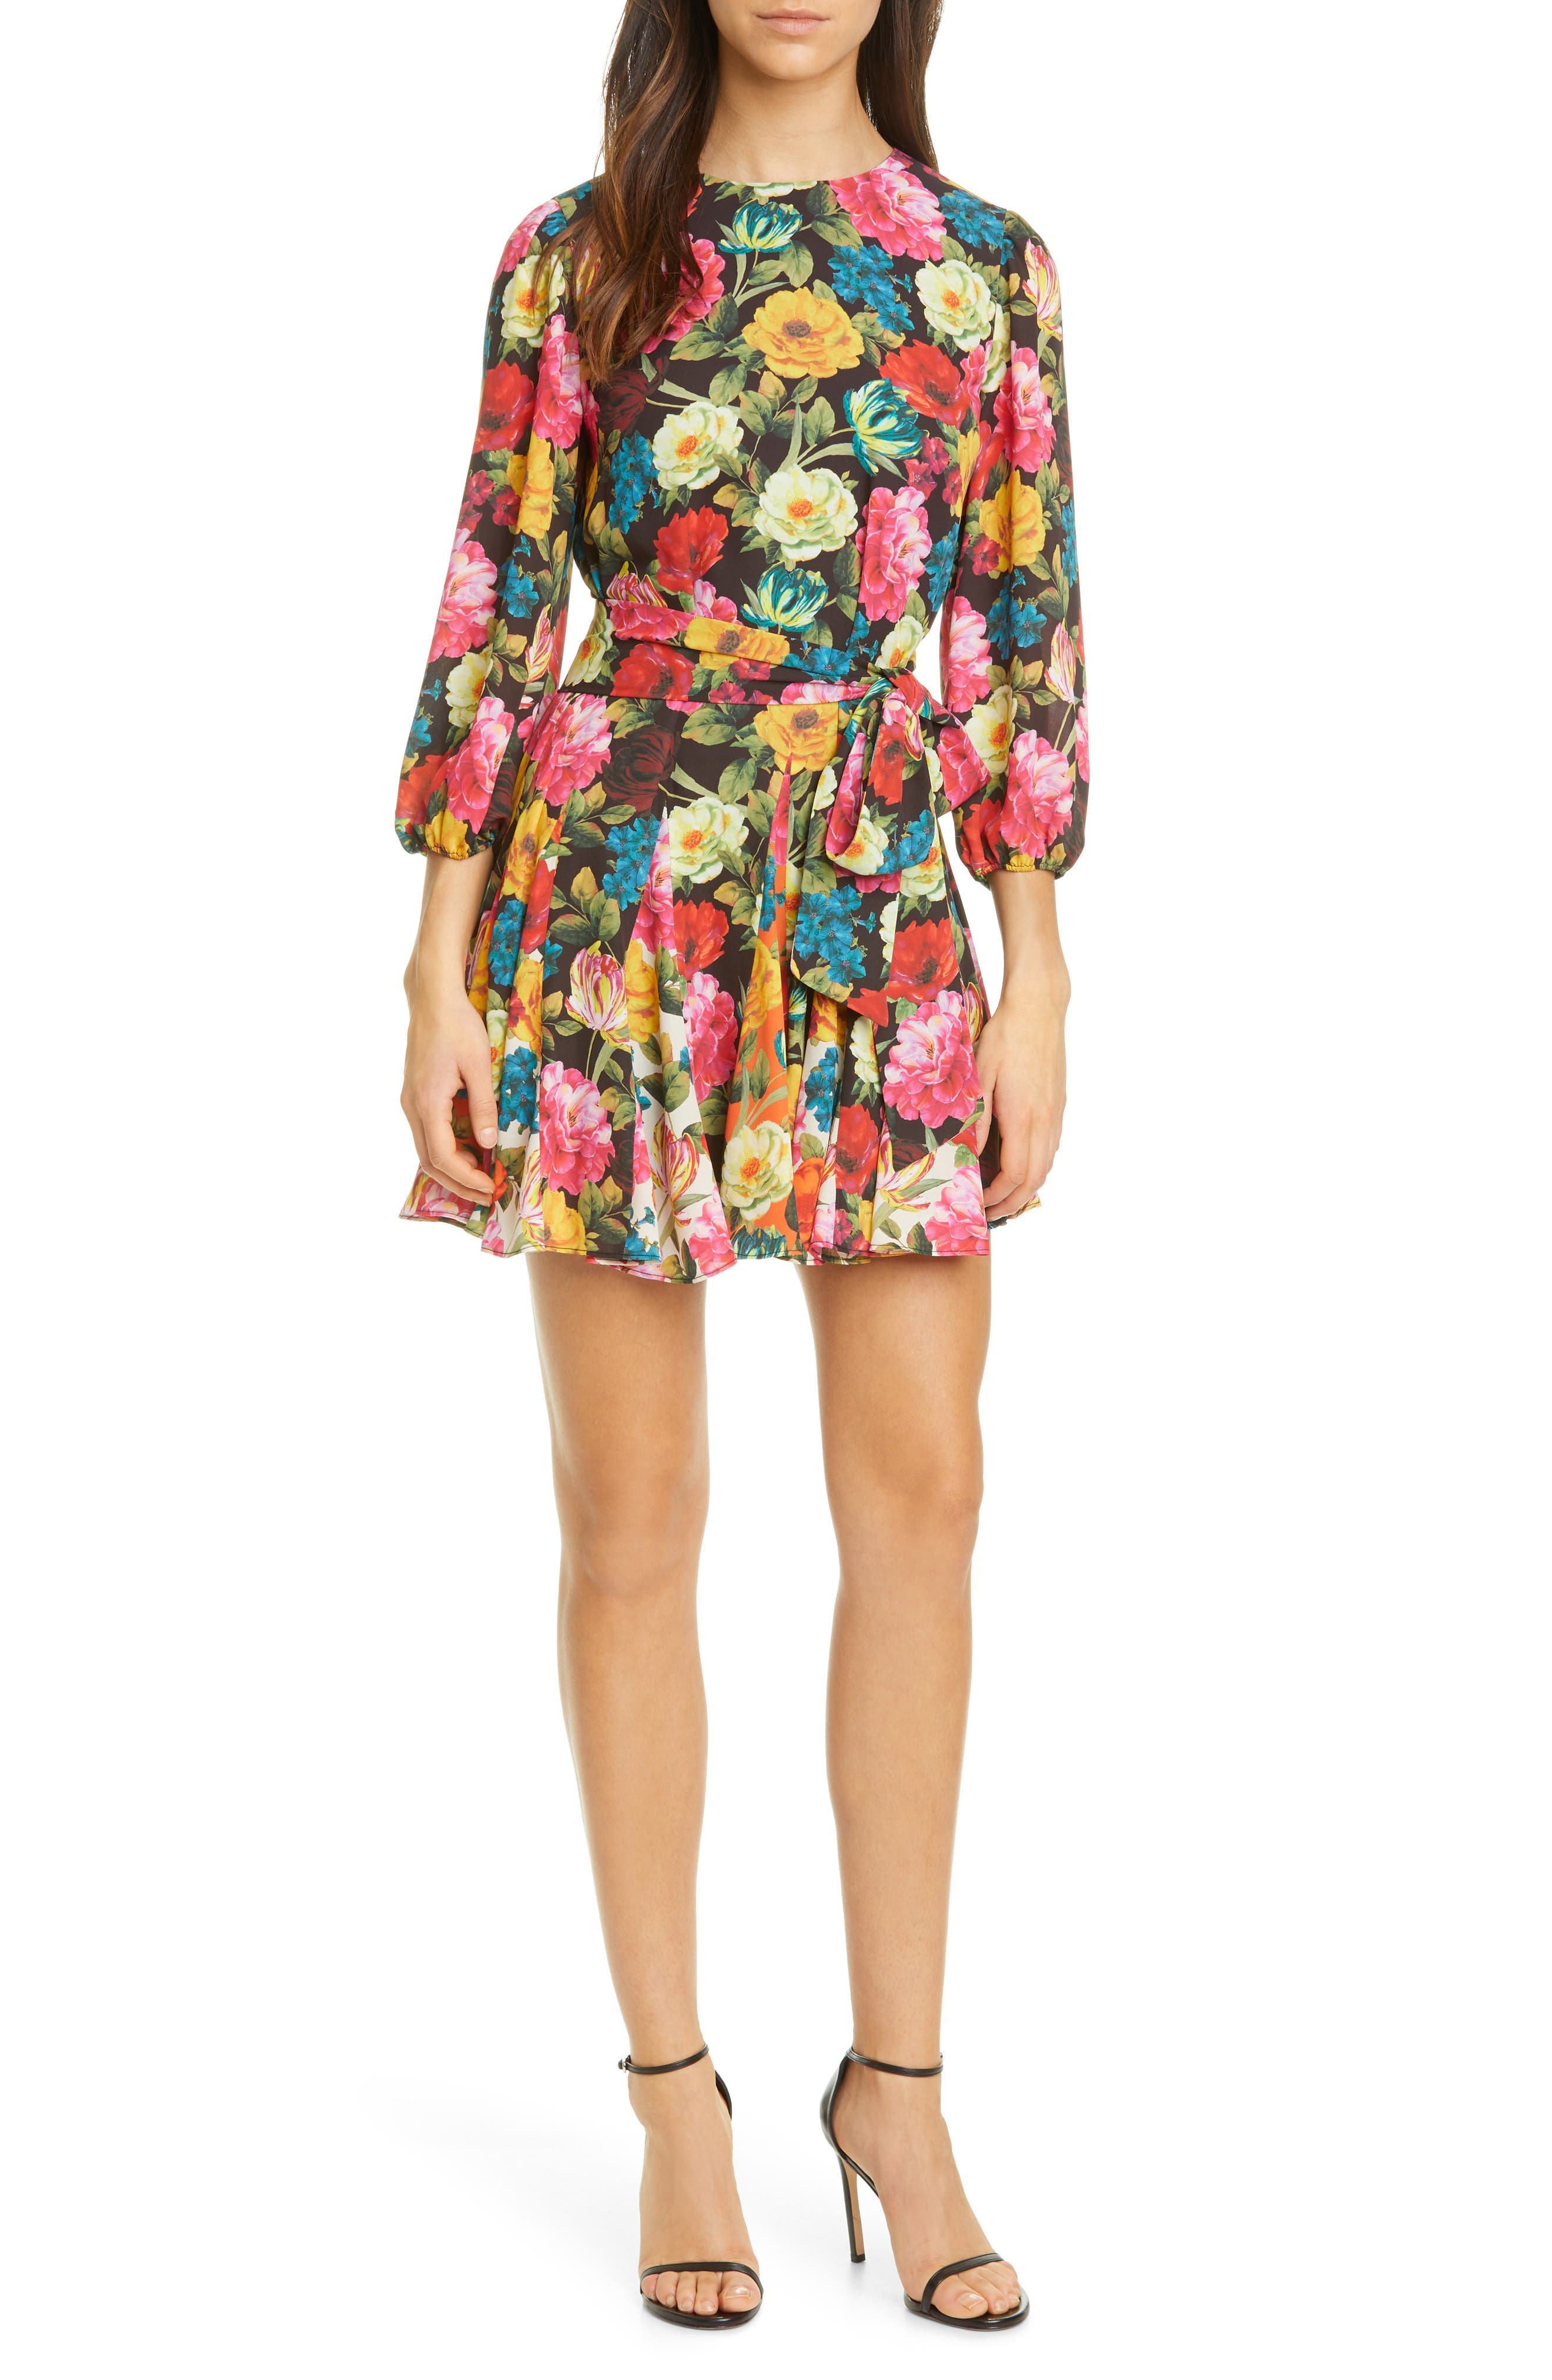 A floaty georgette dress captivates in a vivid floral print painted on a black background and accented in a colorfully backed floral print on the godet insets. Style Name: Alice + Olivia Mina Floral Belted Minidress. Style Number: 6014403. Available in stores.